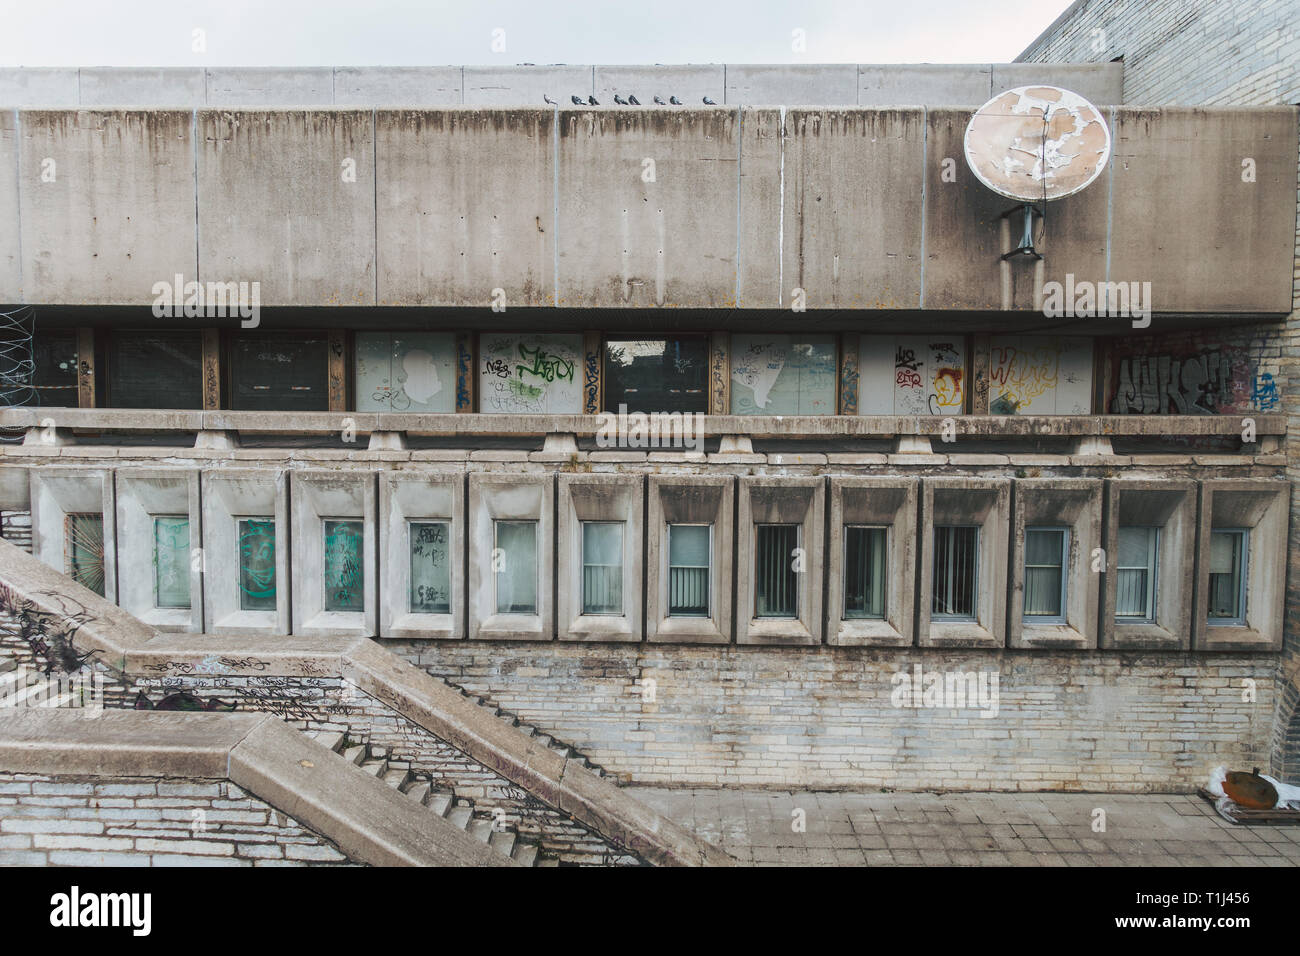 The abandoned Tallinn City Hall (Linnahall), completed in 1980 while under Soviet rule, as a venue to host the 1980 Summer Olympics yachting event - Stock Image